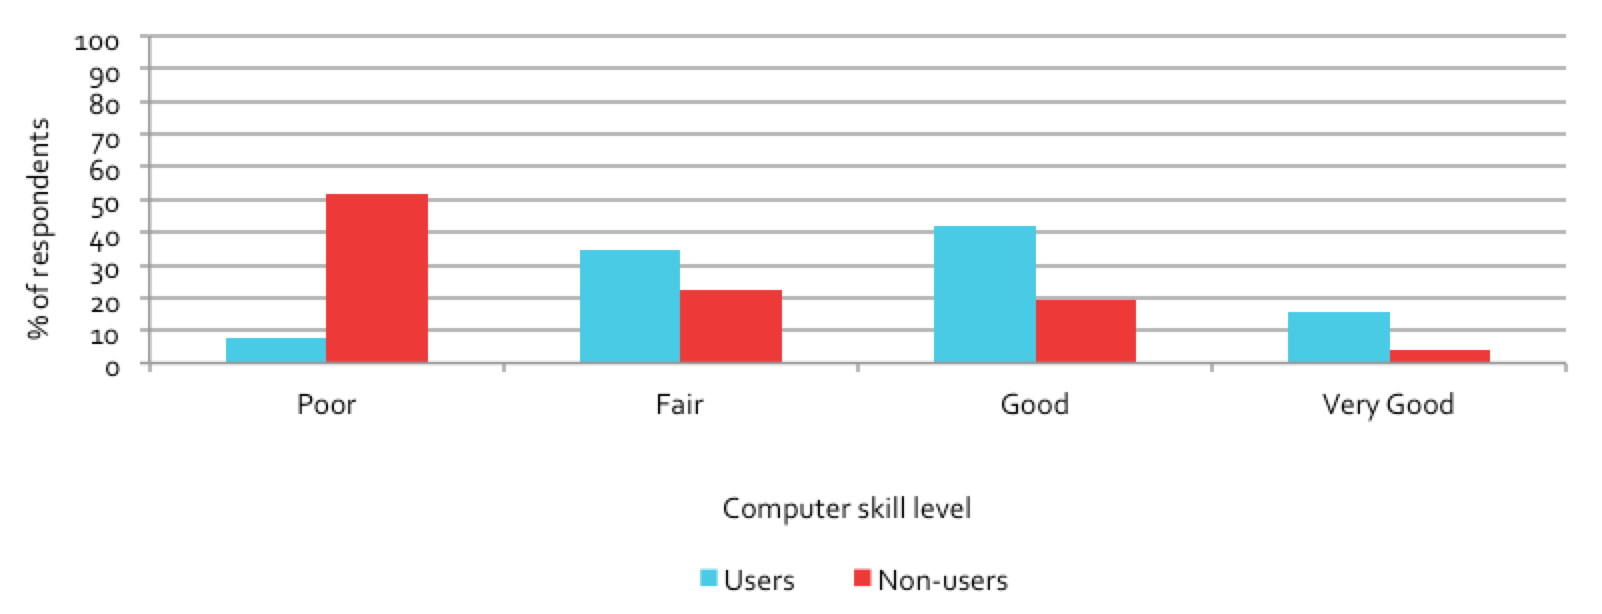 Figure 6.3: Comparison of user and non-user self-reported skill levels in using computers